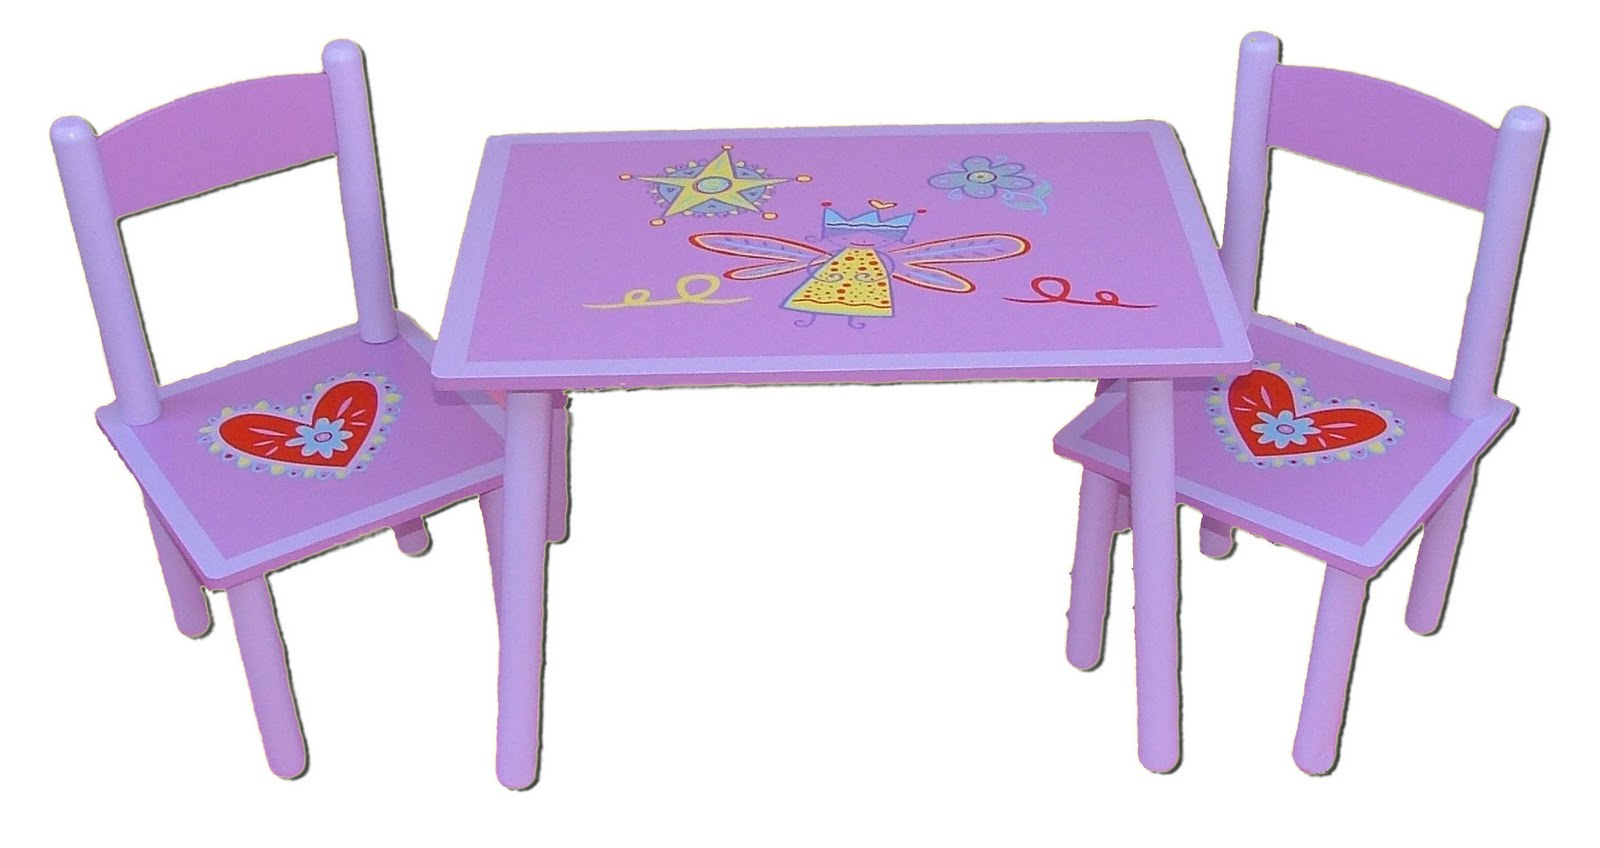 Toddlers Chair And Table Set | bangkokfoodietour.com